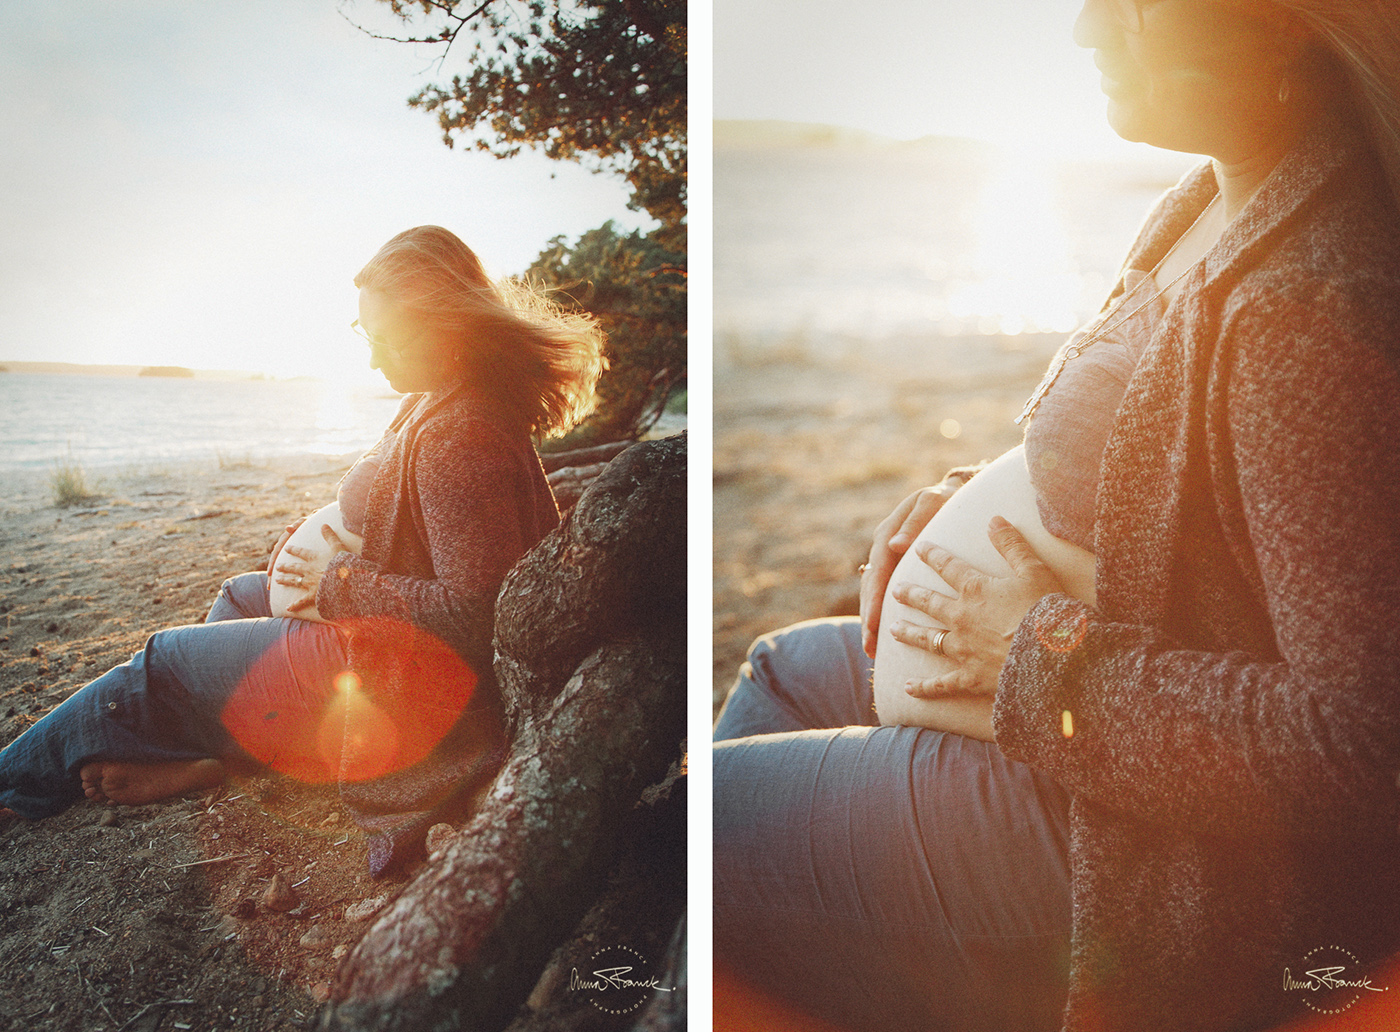 anna, franck, photography, stockholm, pargas, photographer, stockholmfotograf, gravid, pregnancy, raskaana, gravidbilder, mustfinn, sunset, softlight, natural, motherhood, mamma, äitiys